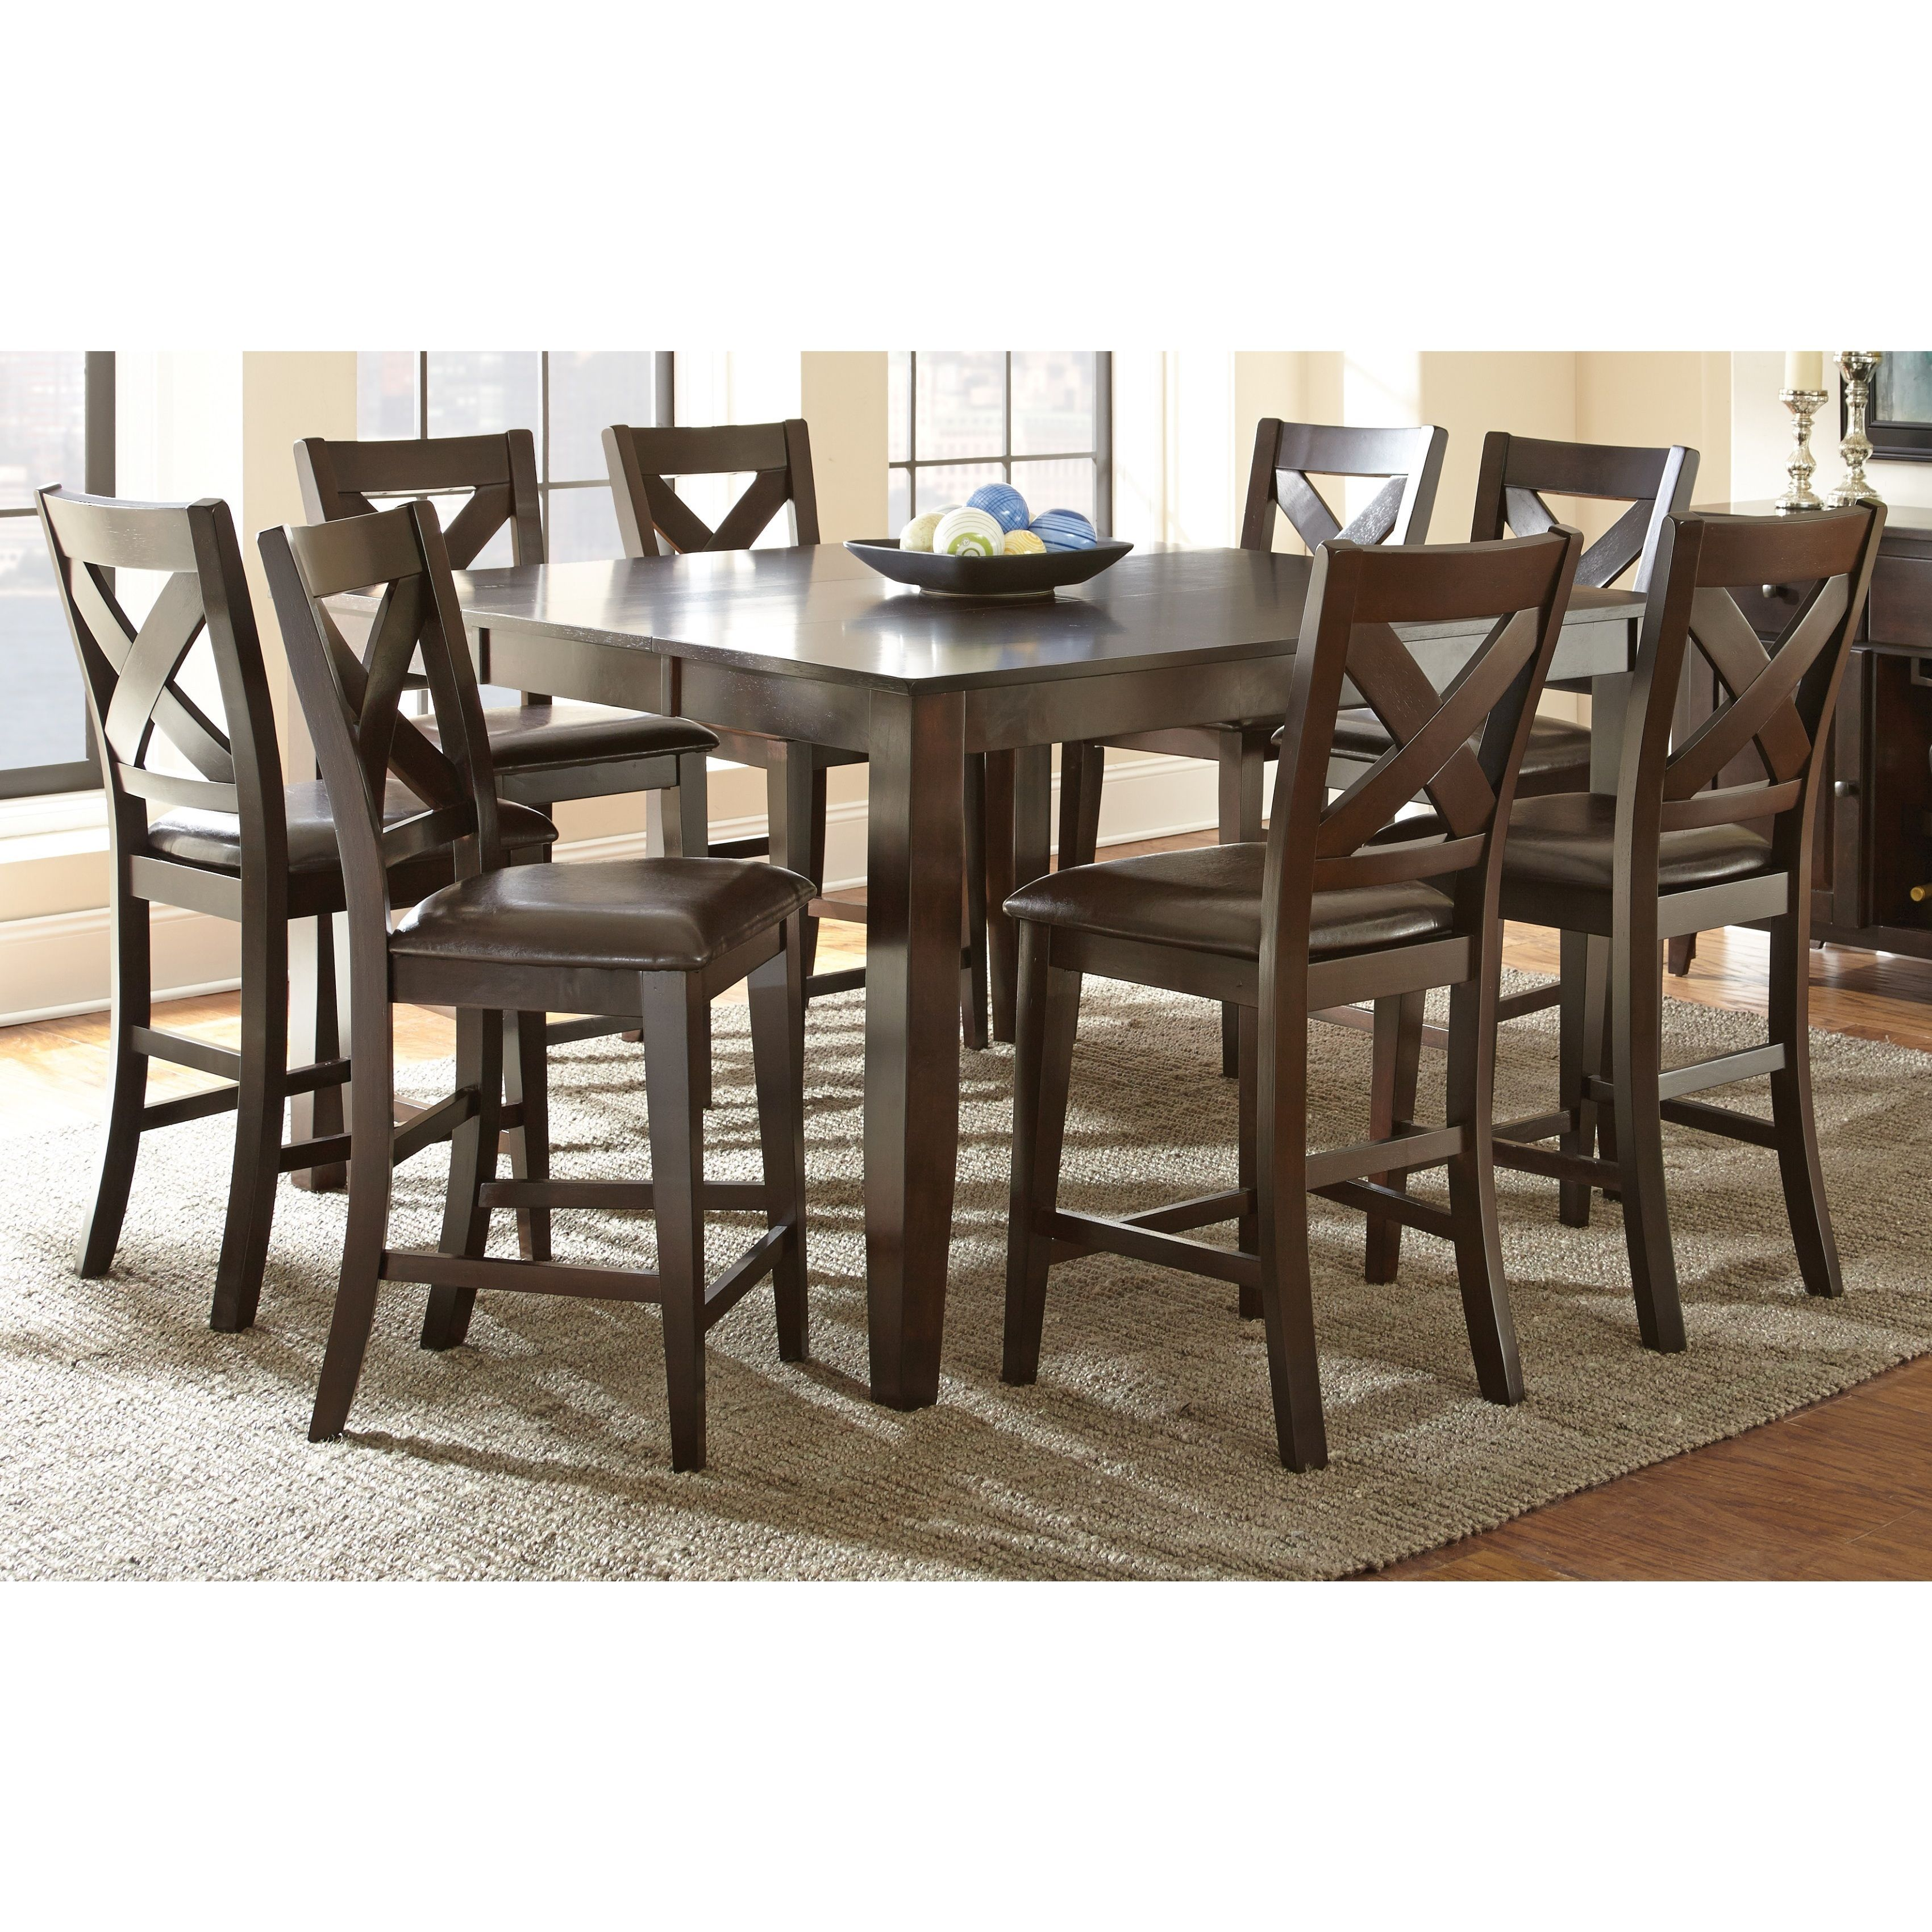 The beautiful Copley counter height dining set will bring warmth and ...